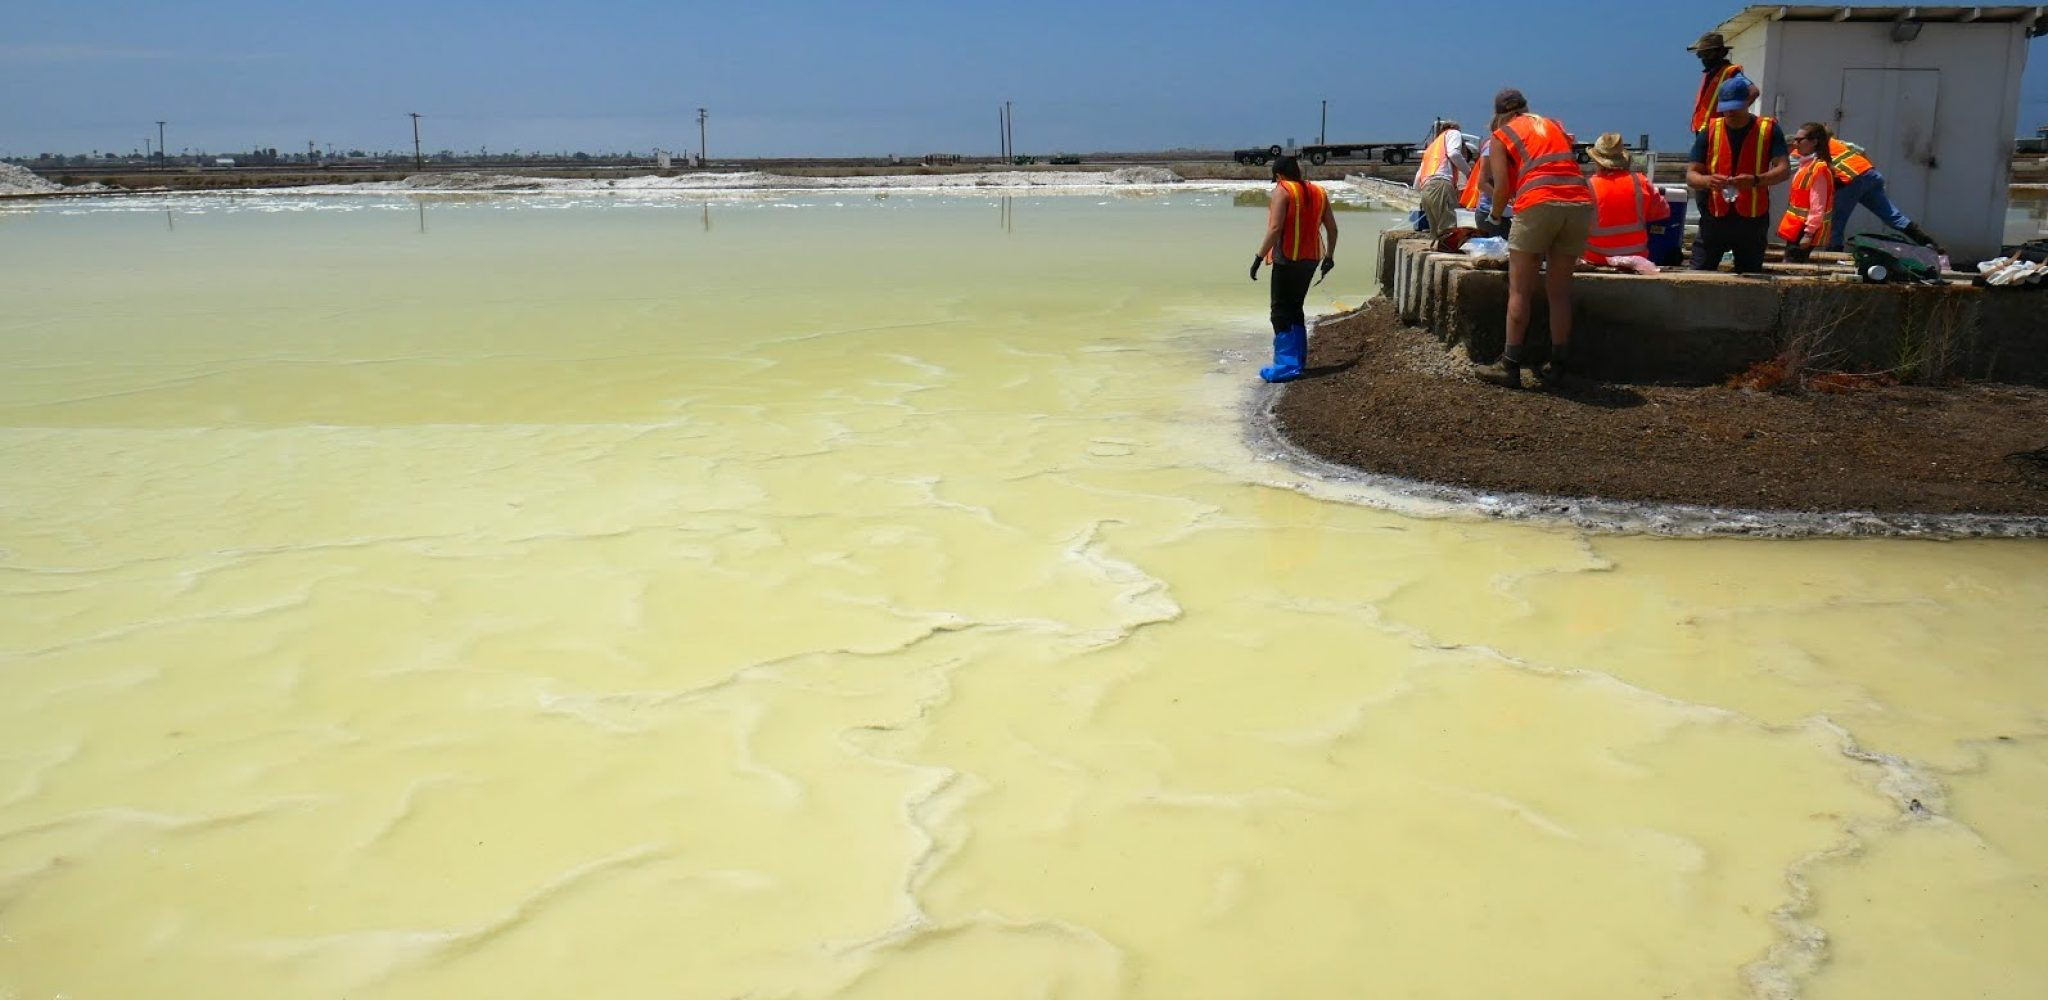 Photo of a yellow-green lake of magnesium chloride, with a small dirt landmass on the right with several people standing on it, wearing orange vests and taking samples.